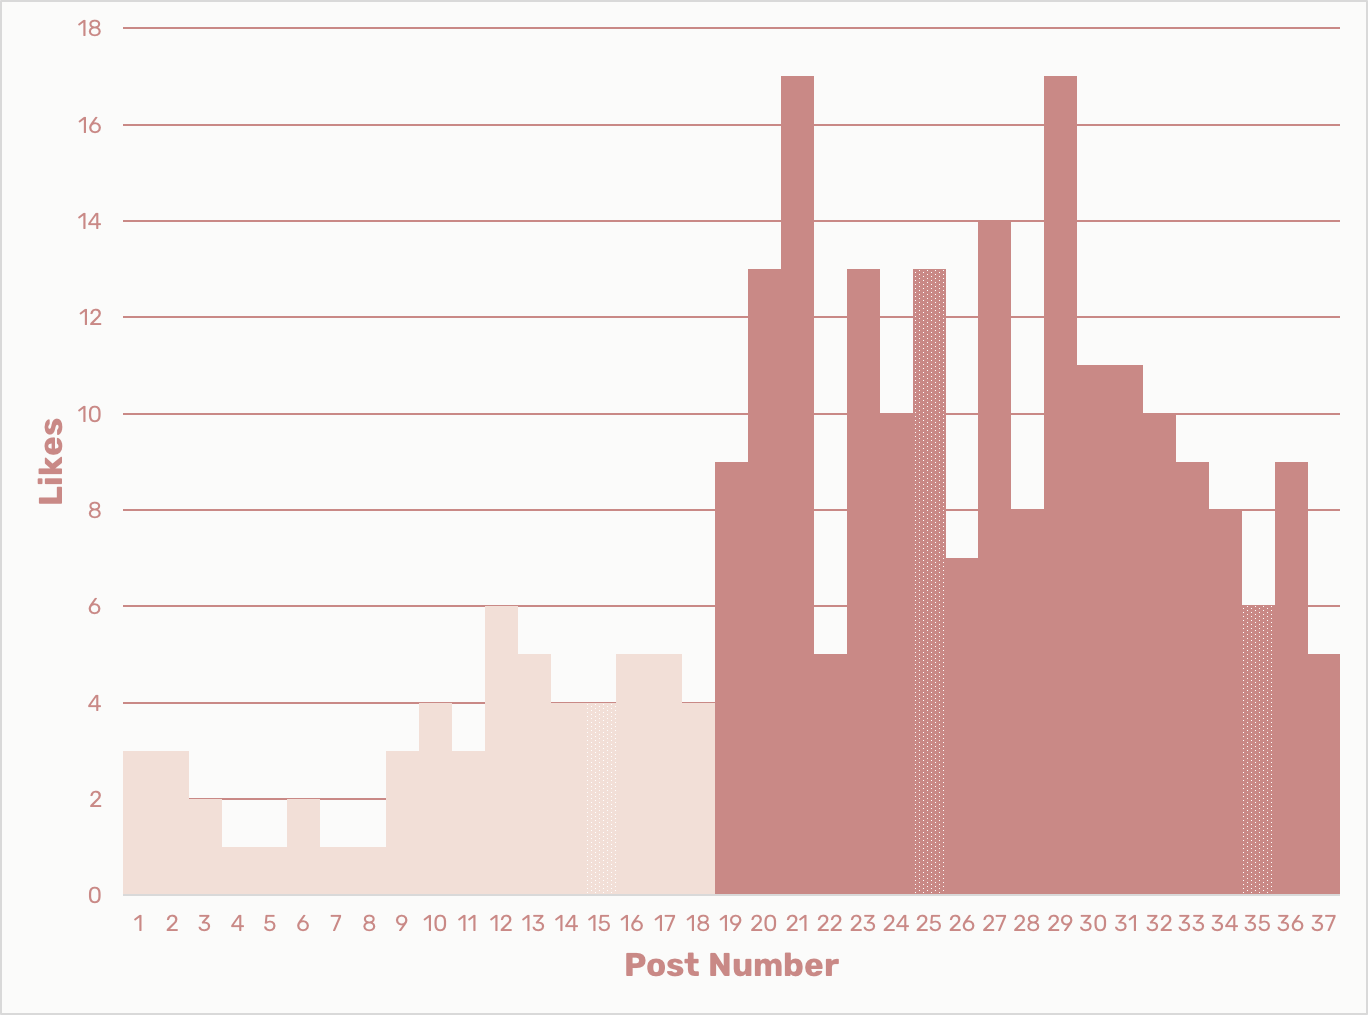 A graph of likes per post on Instagram